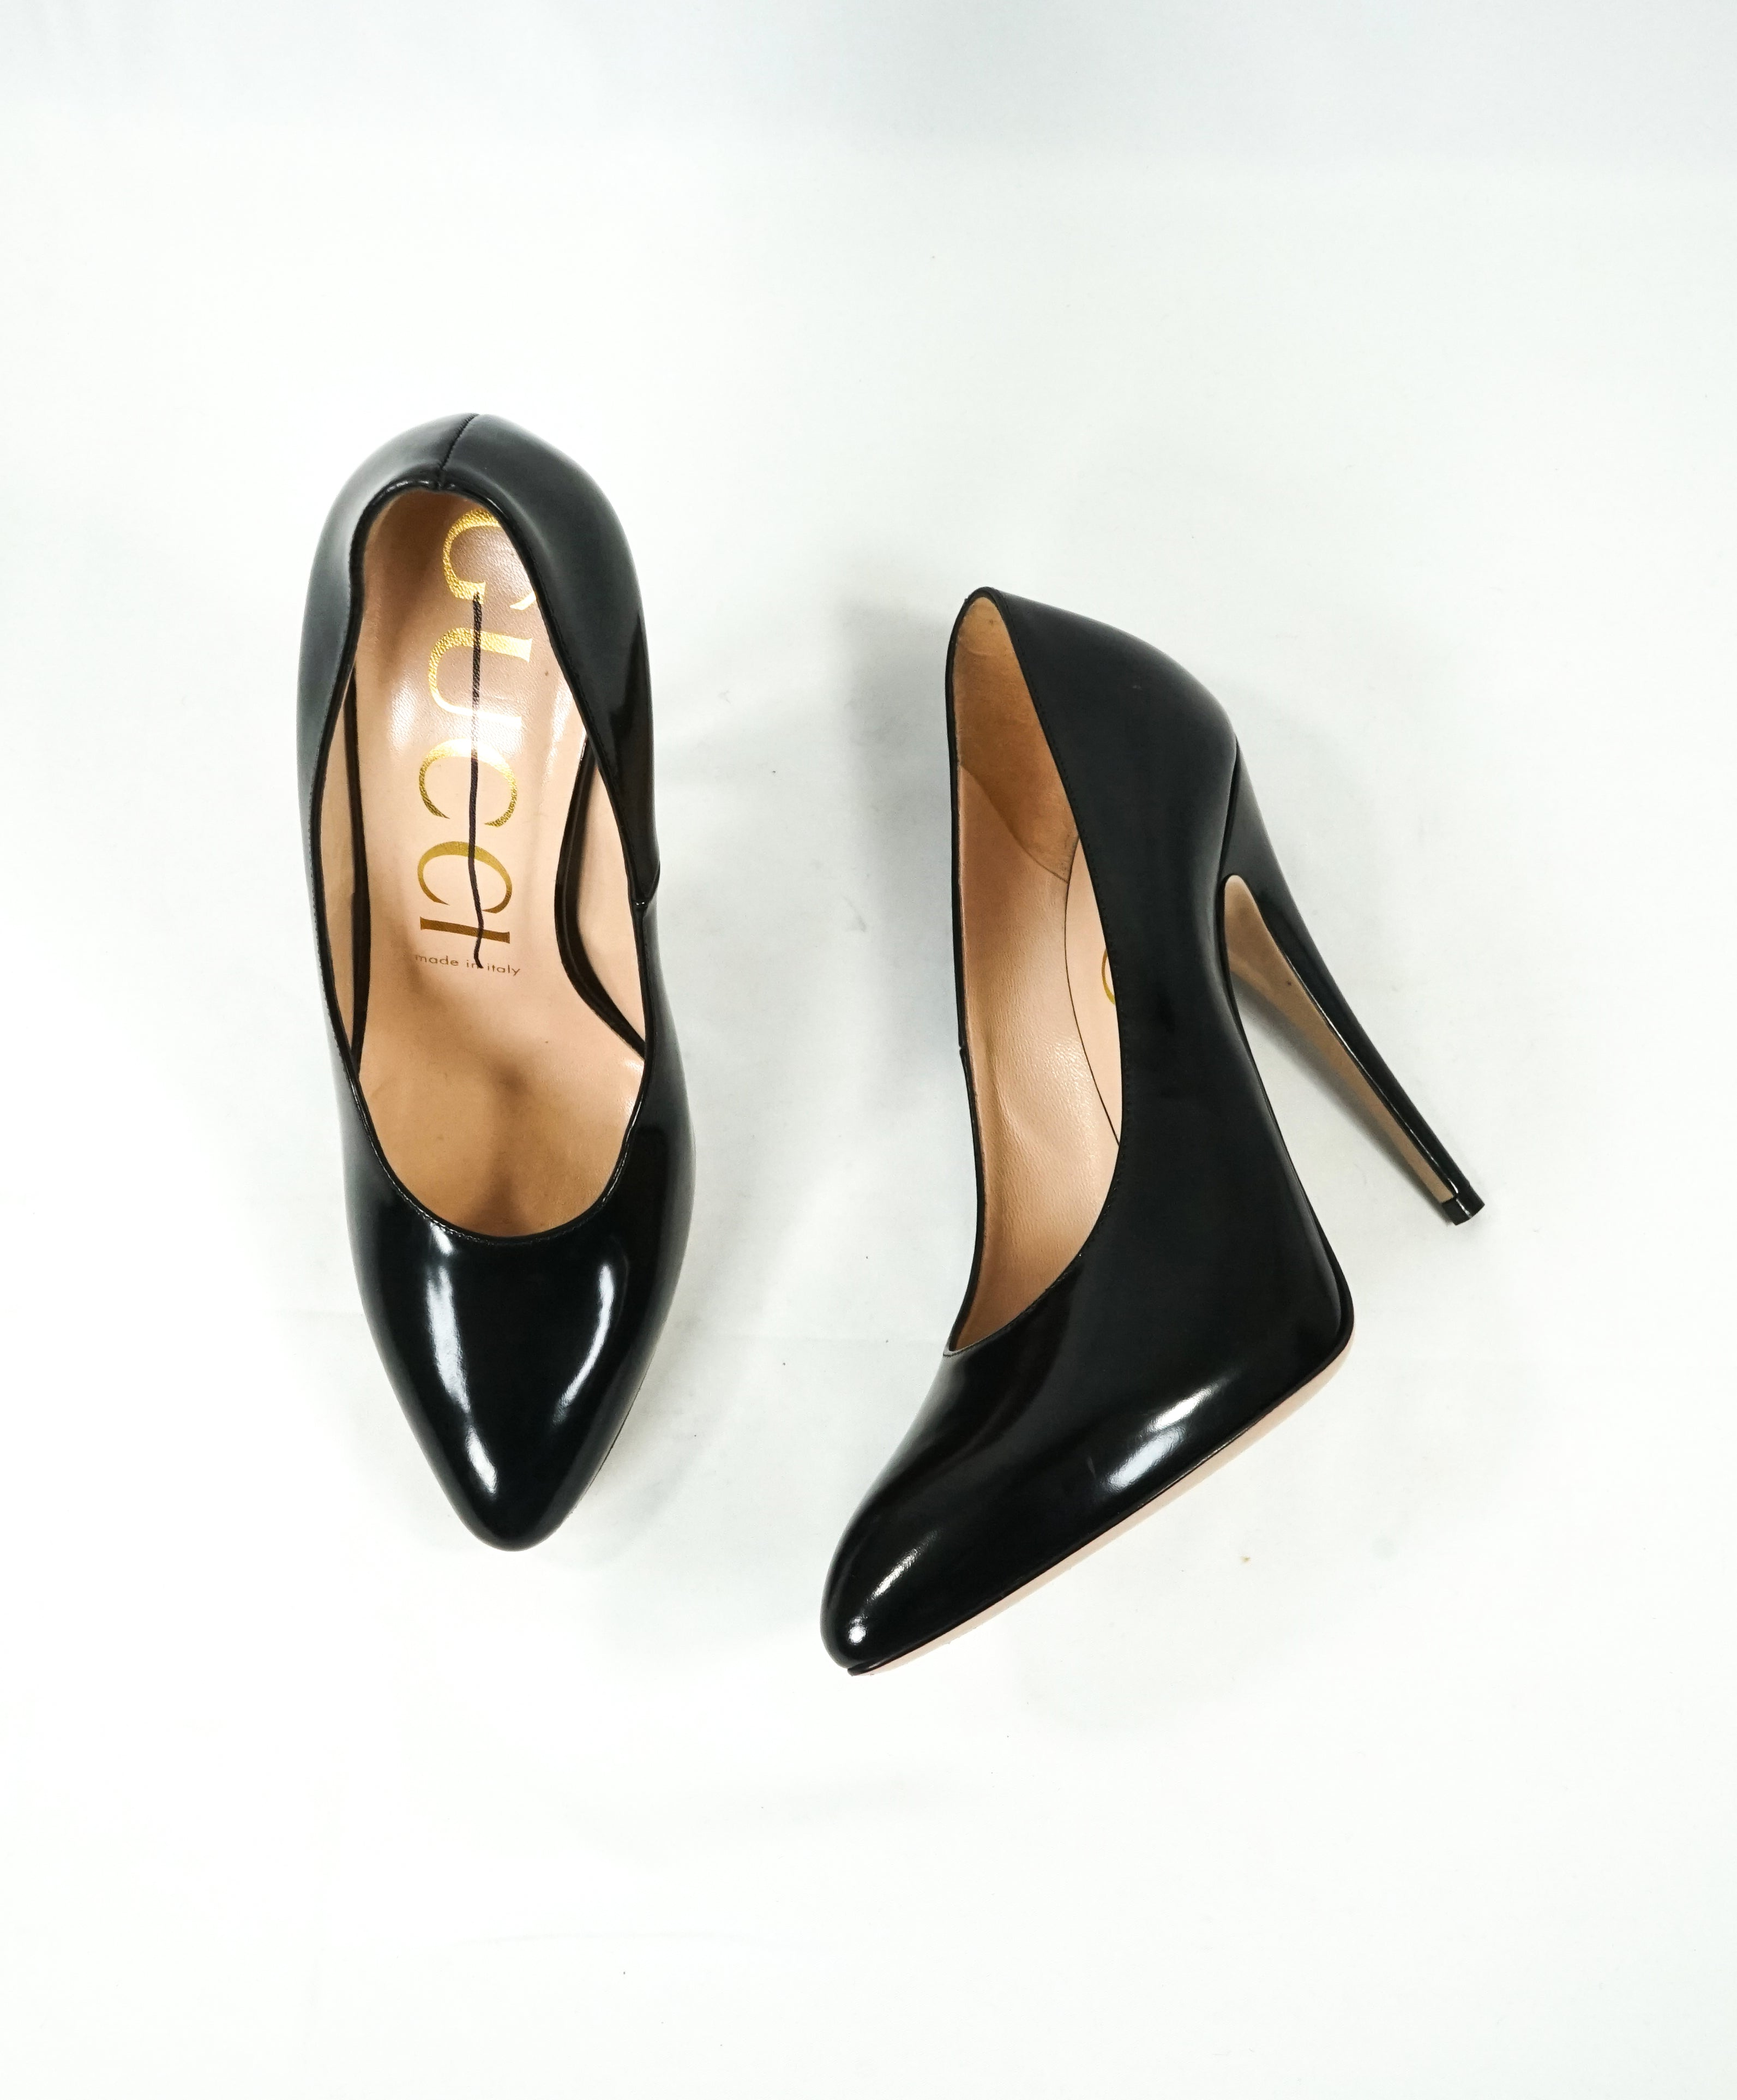 826e11ec3511d GUCCI - Black Patent Leather Round Toe High Heel Pumps- 7 – Luxe Hanger